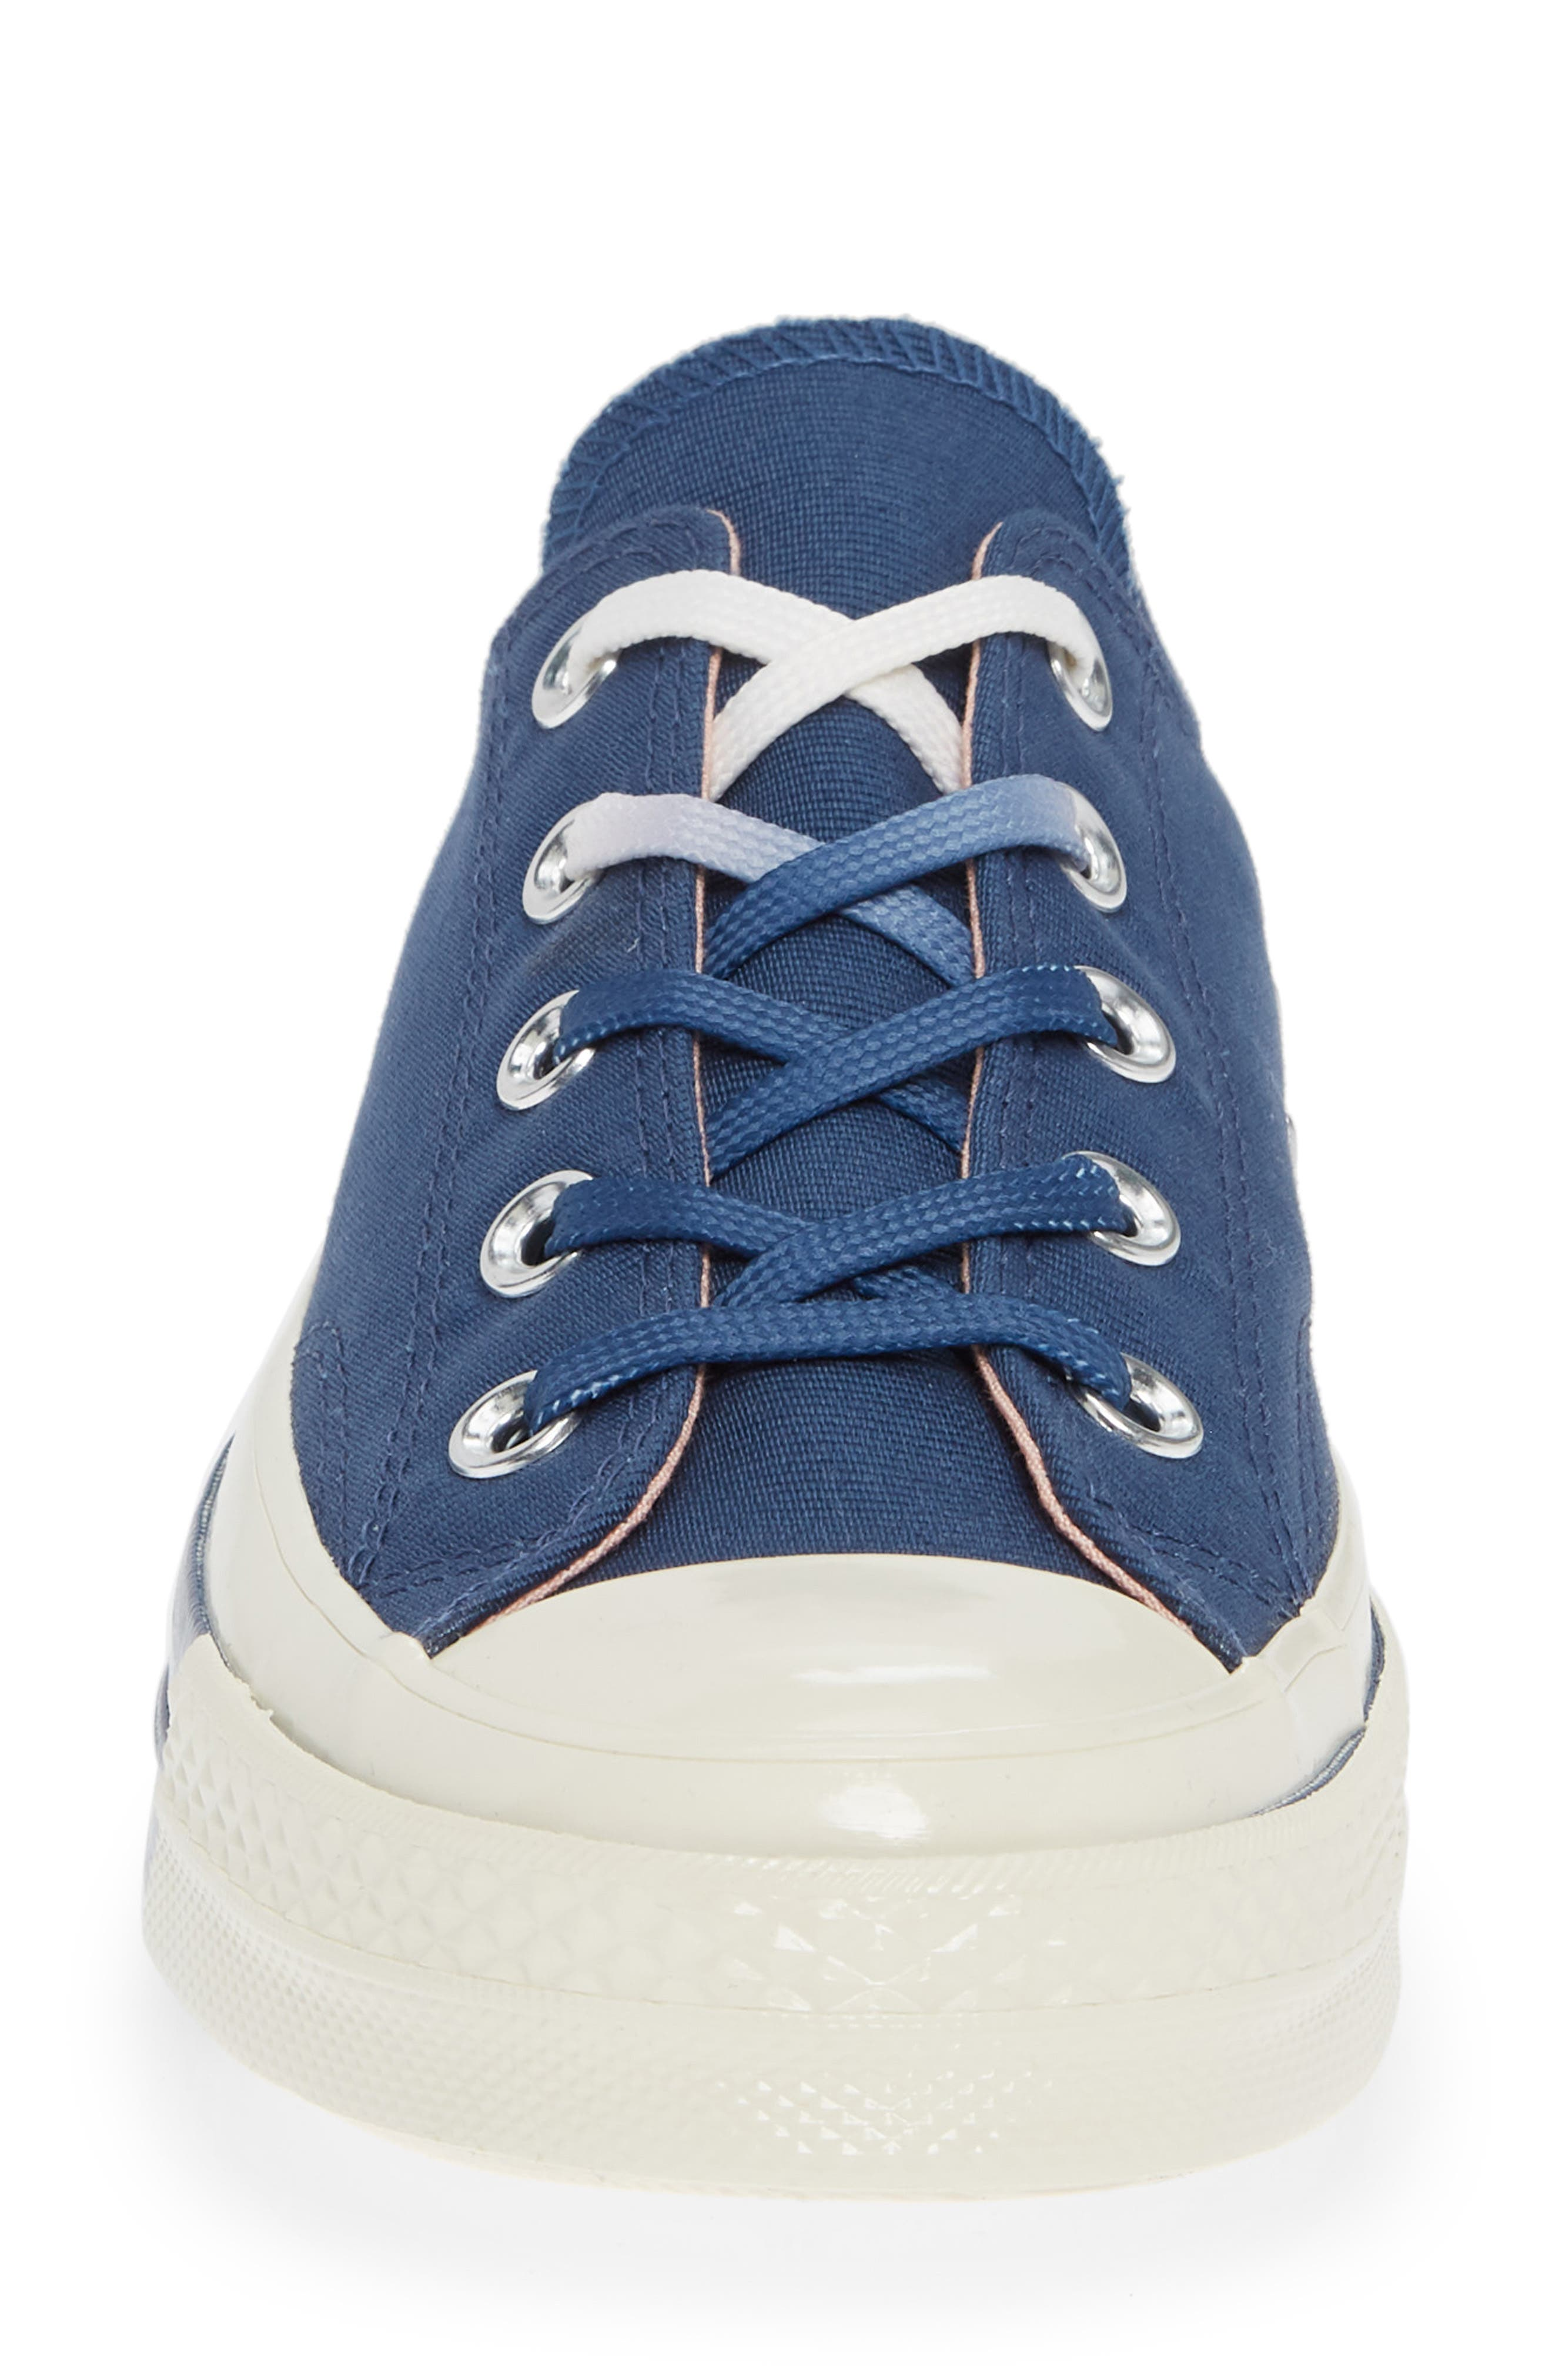 Chuck Taylor<sup>®</sup> All Star<sup>®</sup> 70 Colorblock Low Top Sneaker,                             Alternate thumbnail 4, color,                             MASON BLUE